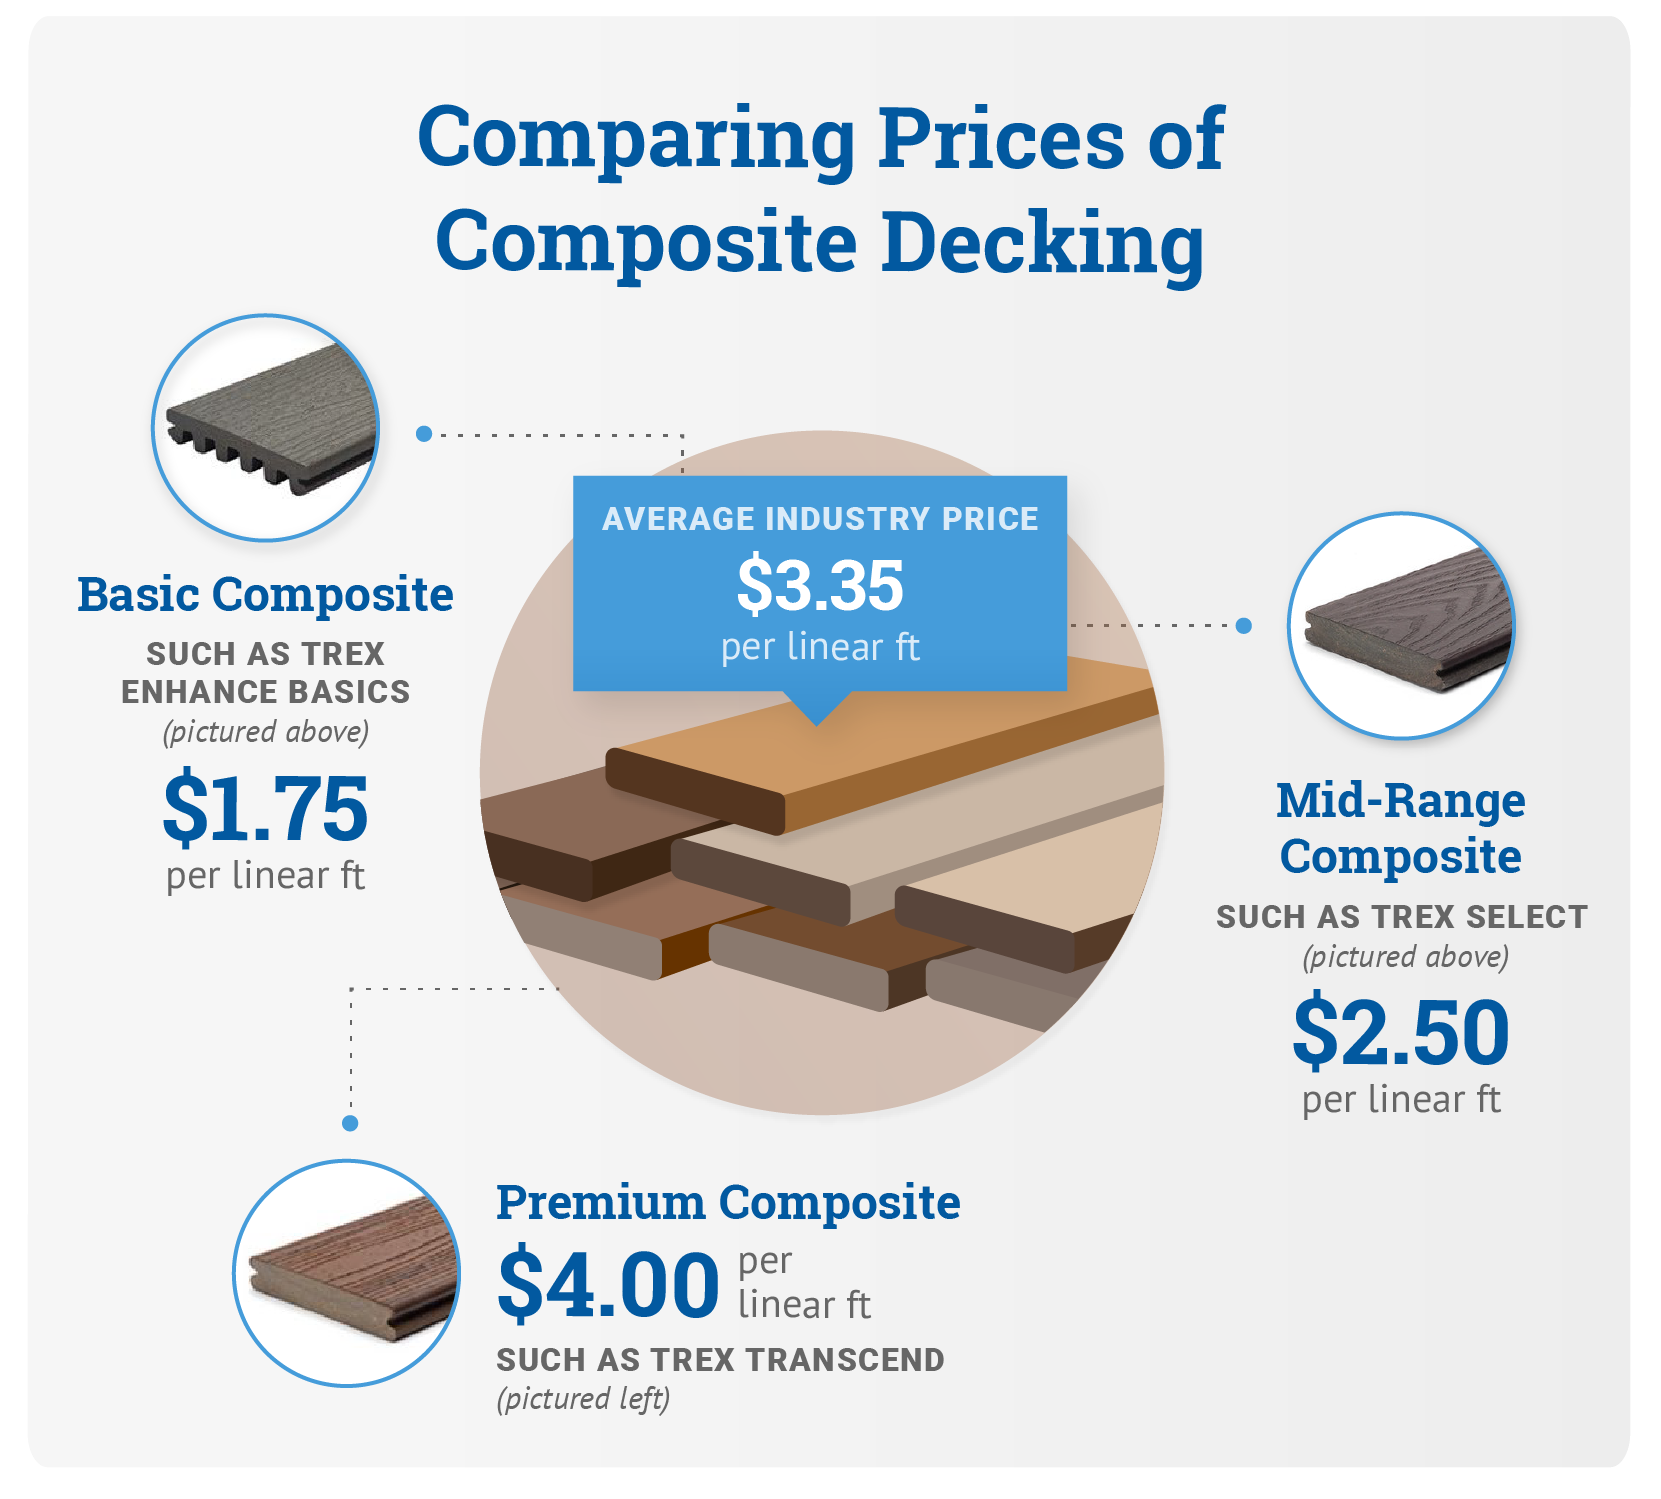 Comparing Prices Of Composite Decking Graphic